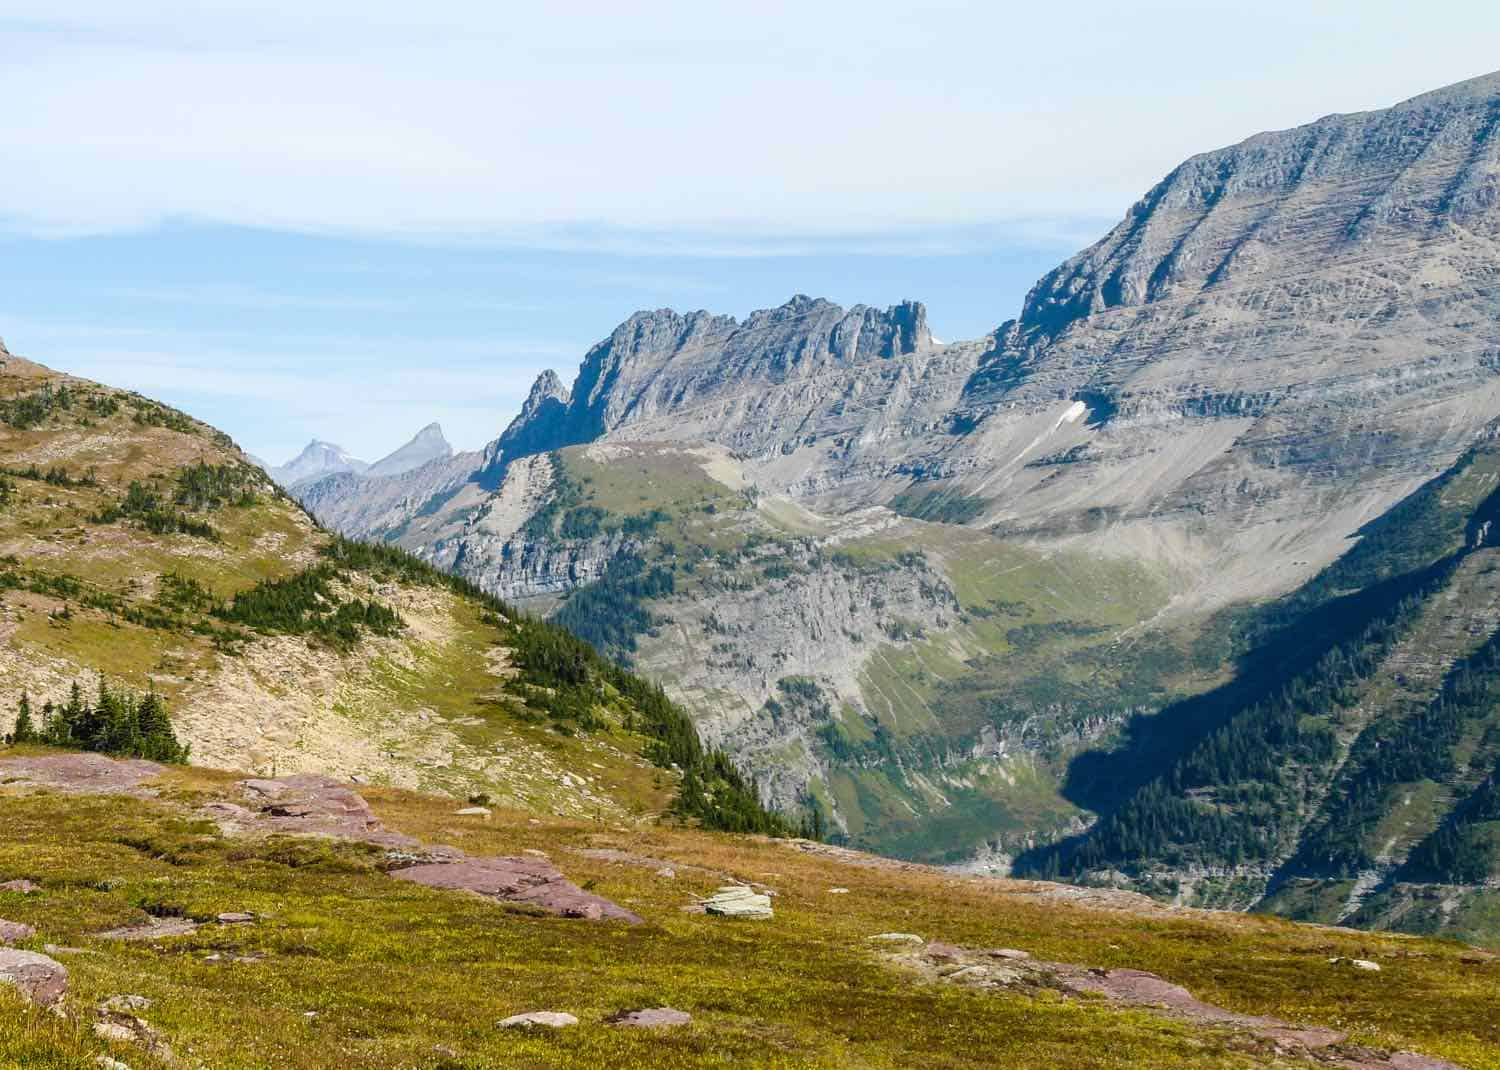 tundra surrounded by mountains in Glacier National Park